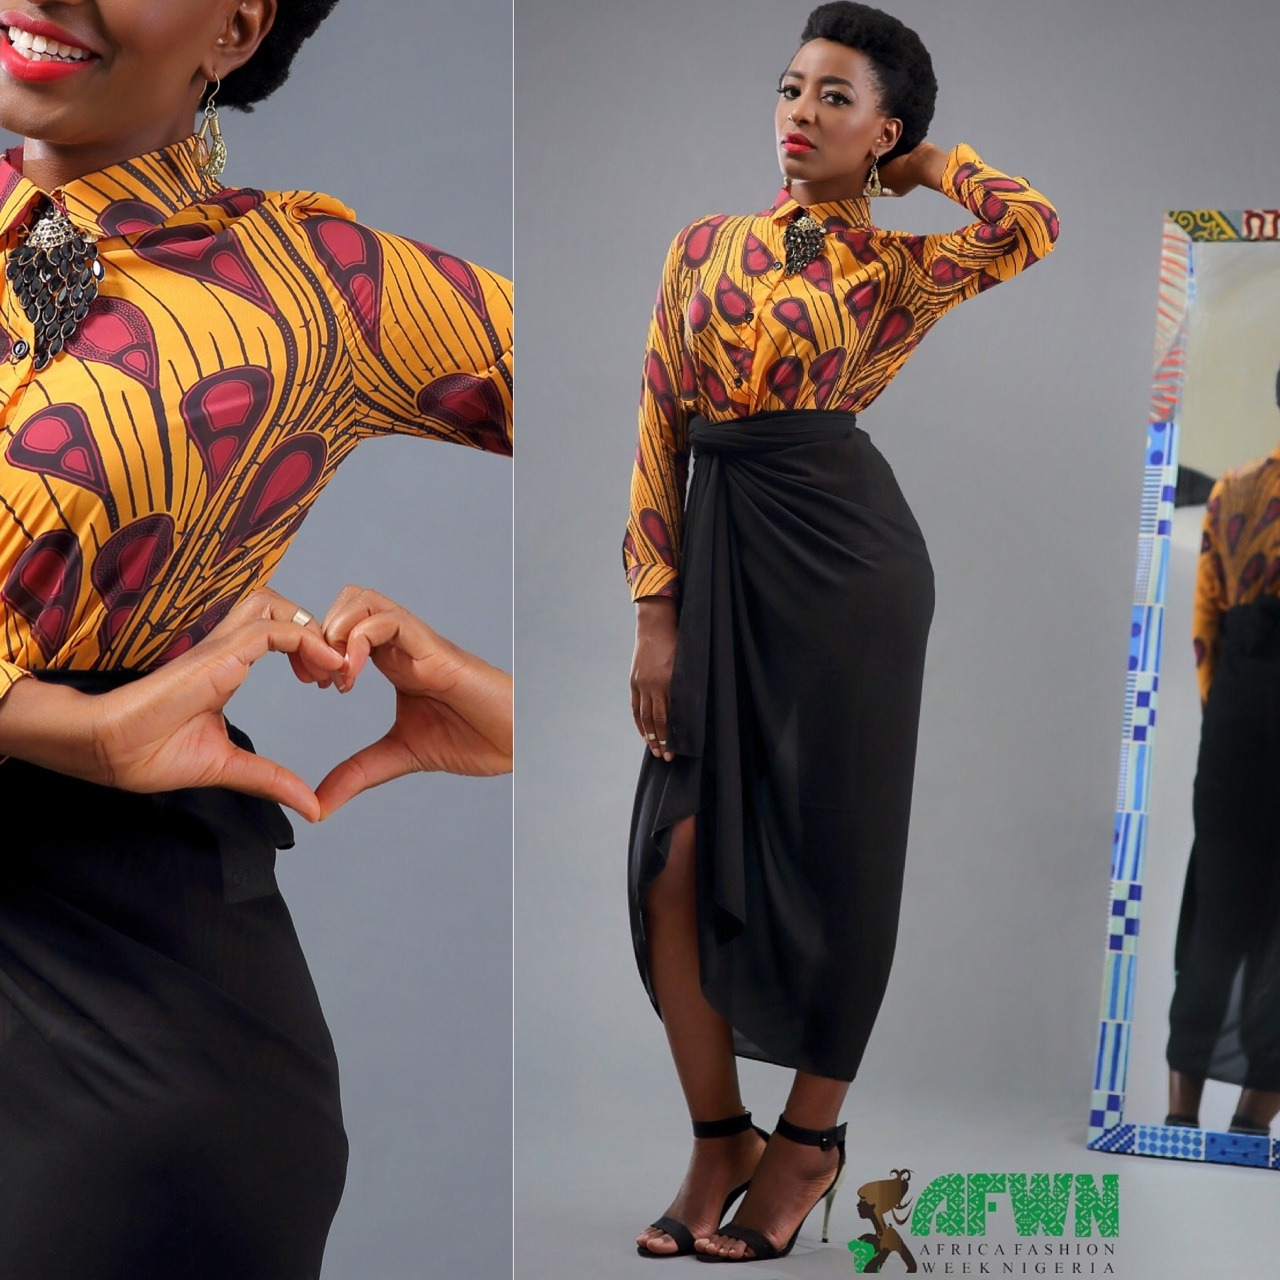 Does this count as #IroAndBuba or is it a #Blouse and #Sarong?     #AFWNContest is still on, see  http://africafashionweeknigeria.com/competitions/contest-evolution-of-iro-and-buba/  for full details on the contest and what's up for you to win. You can also send your images to marketing@africafashionweeknigeria.com